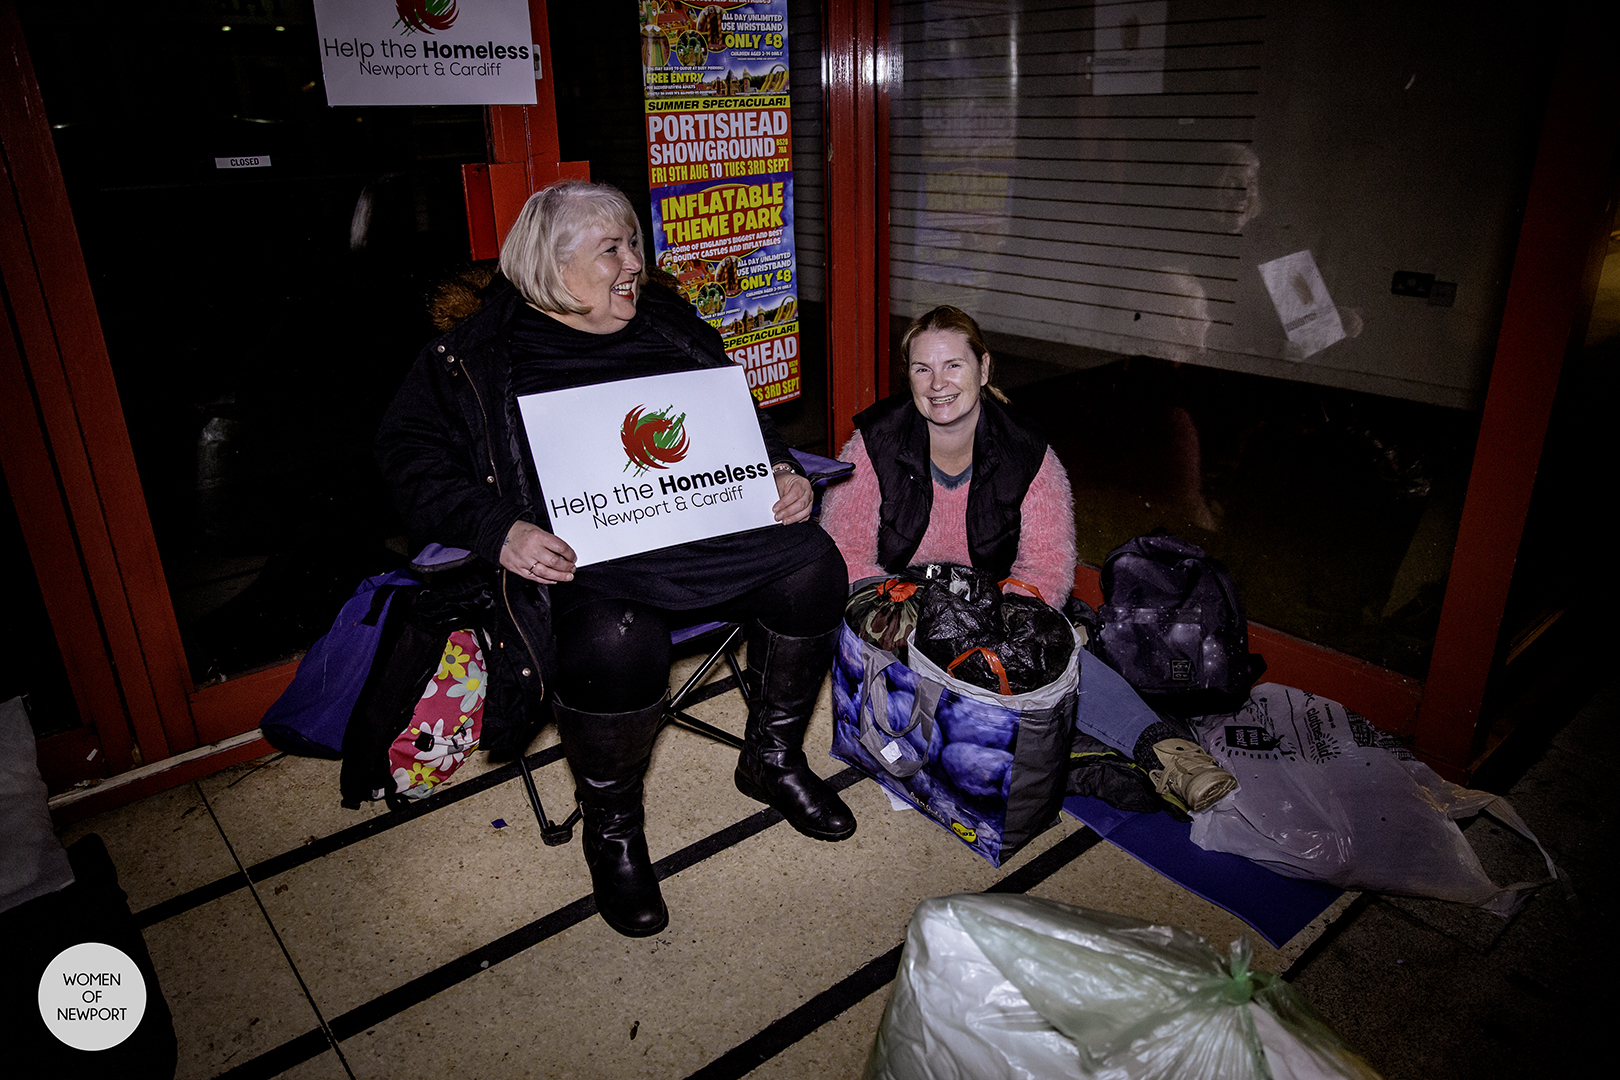 Help for Homeless Newport and Cardiff sleep rough on Newport streets to raise awareness